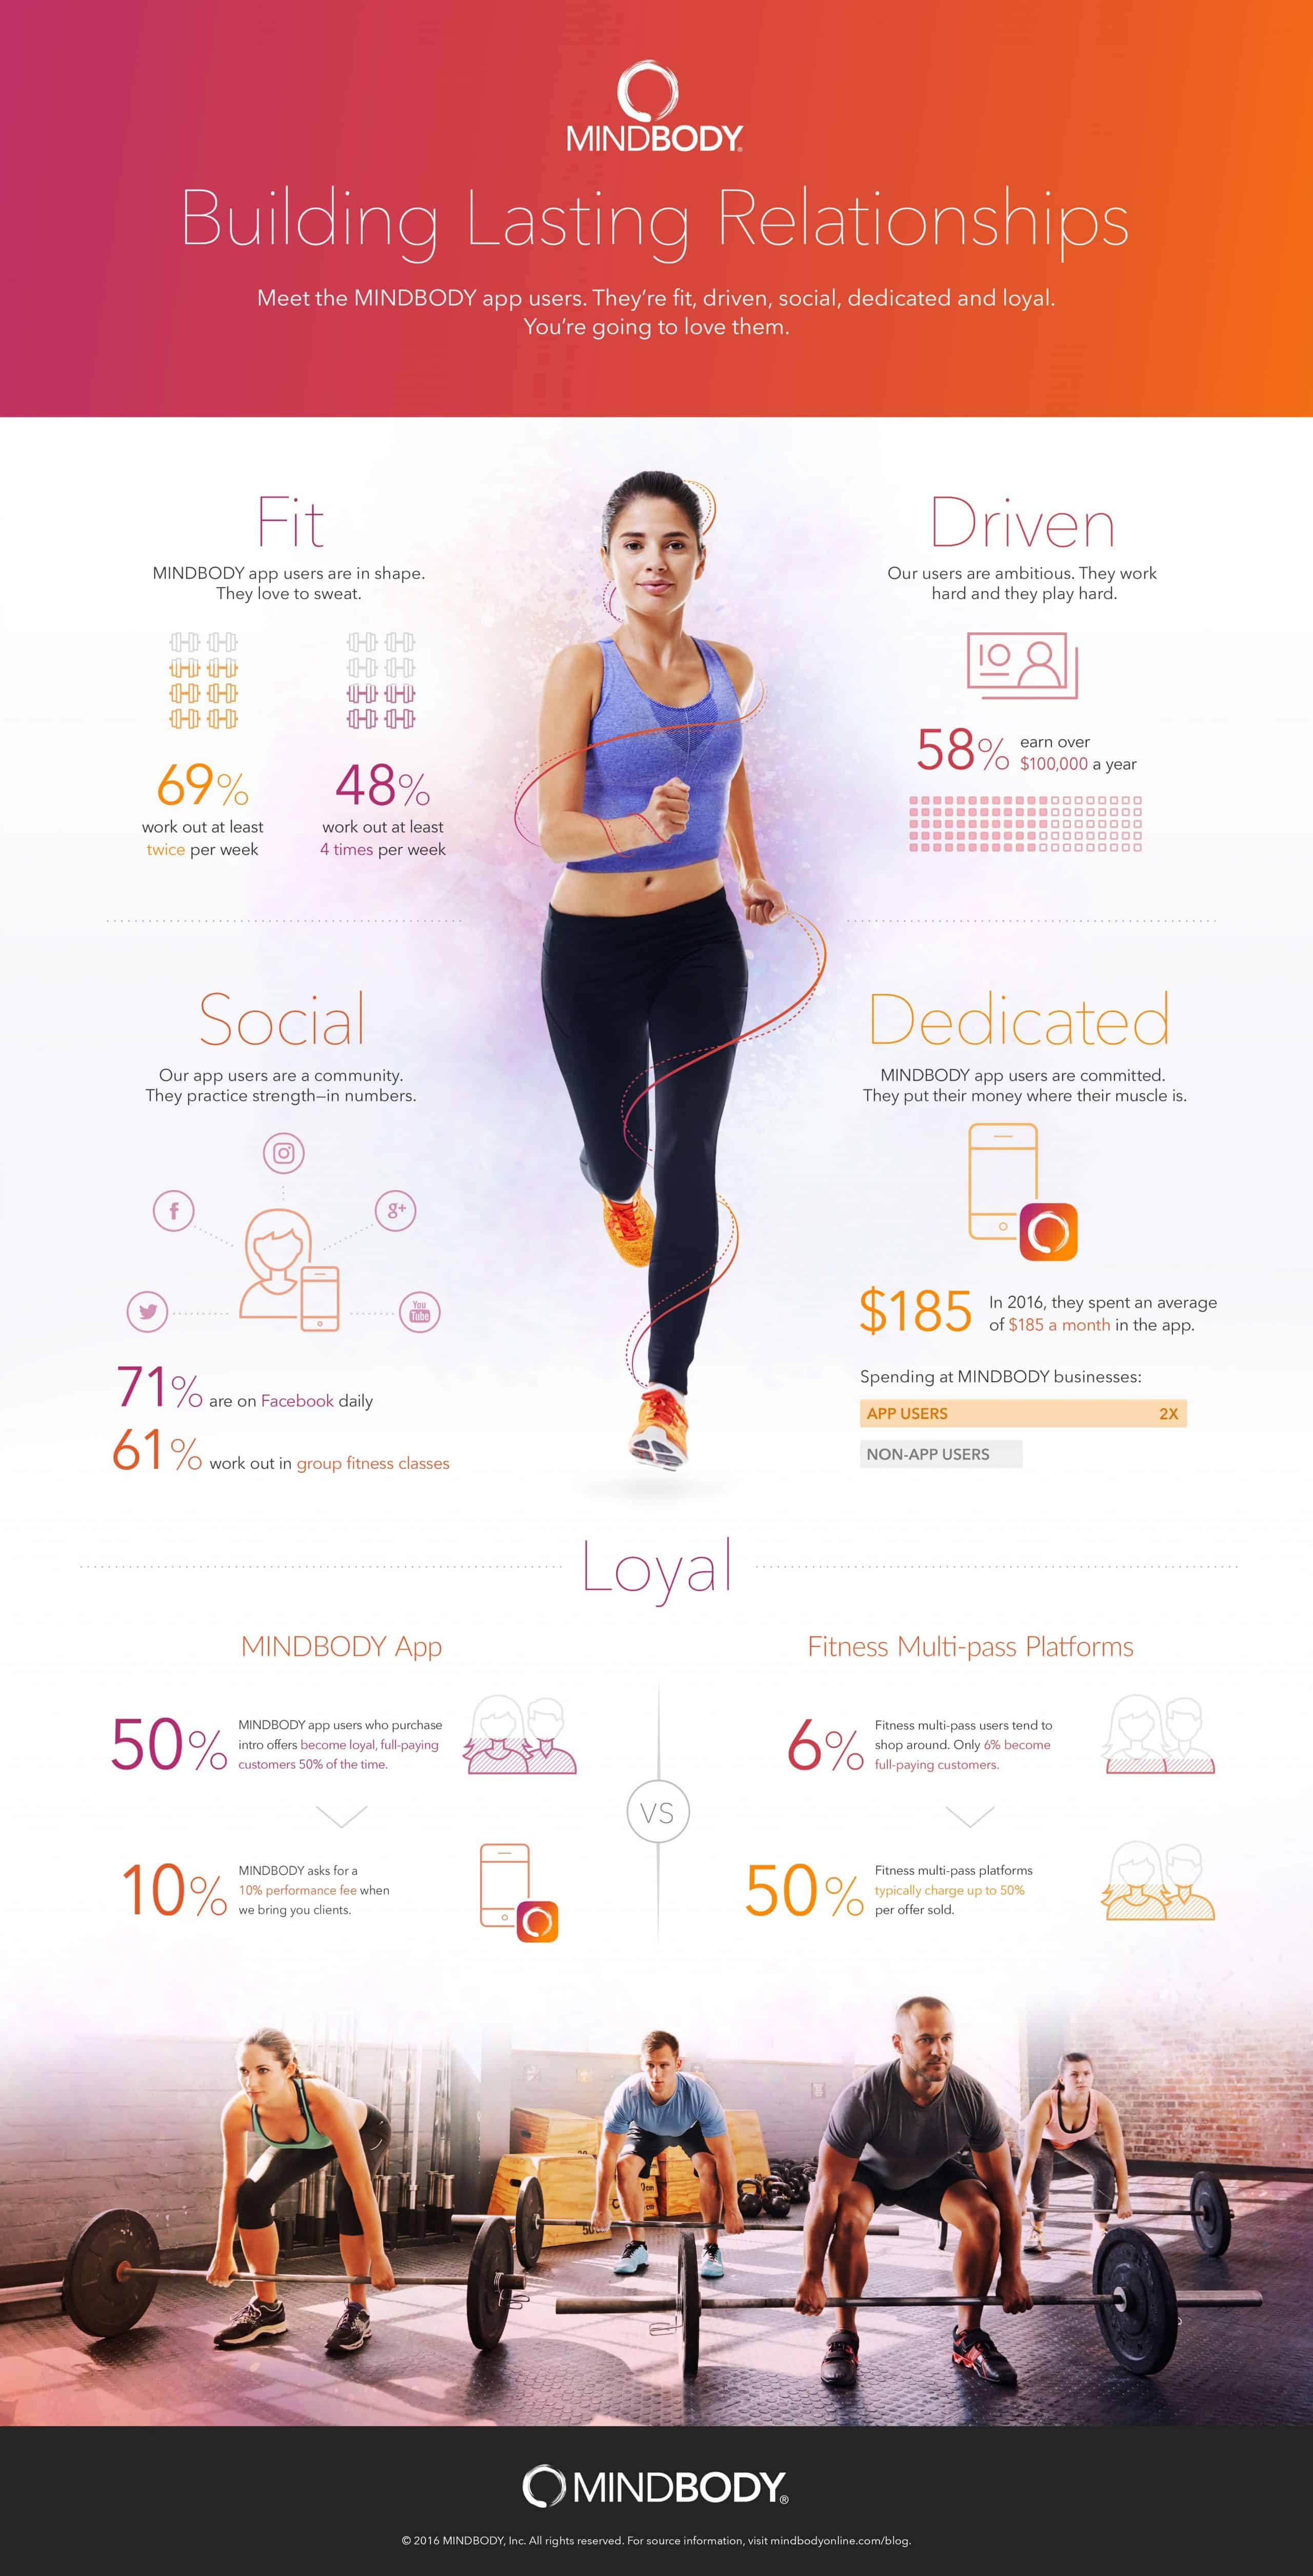 MINDBODY-infographic-relationships-full (1)